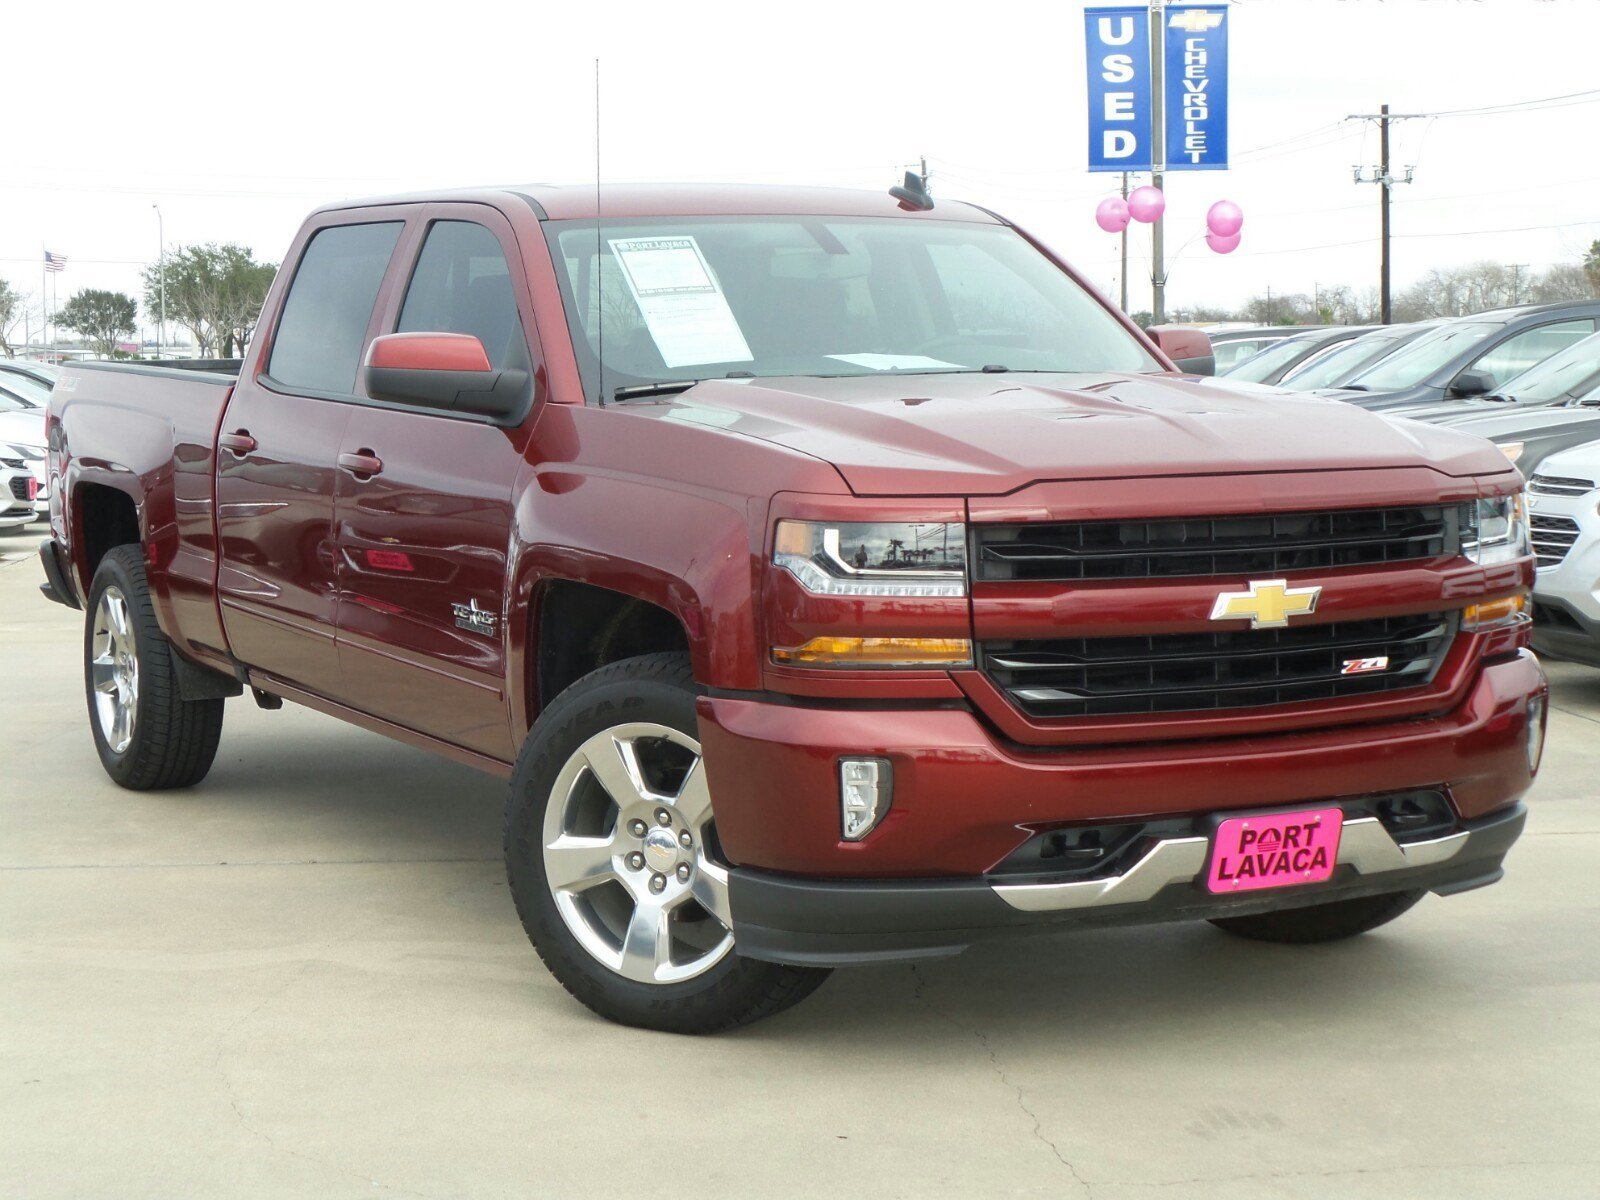 pre owned 2017 chevrolet silverado 1500 lt z71 4x4 crew cab pickup in port lavaca hg114895. Black Bedroom Furniture Sets. Home Design Ideas